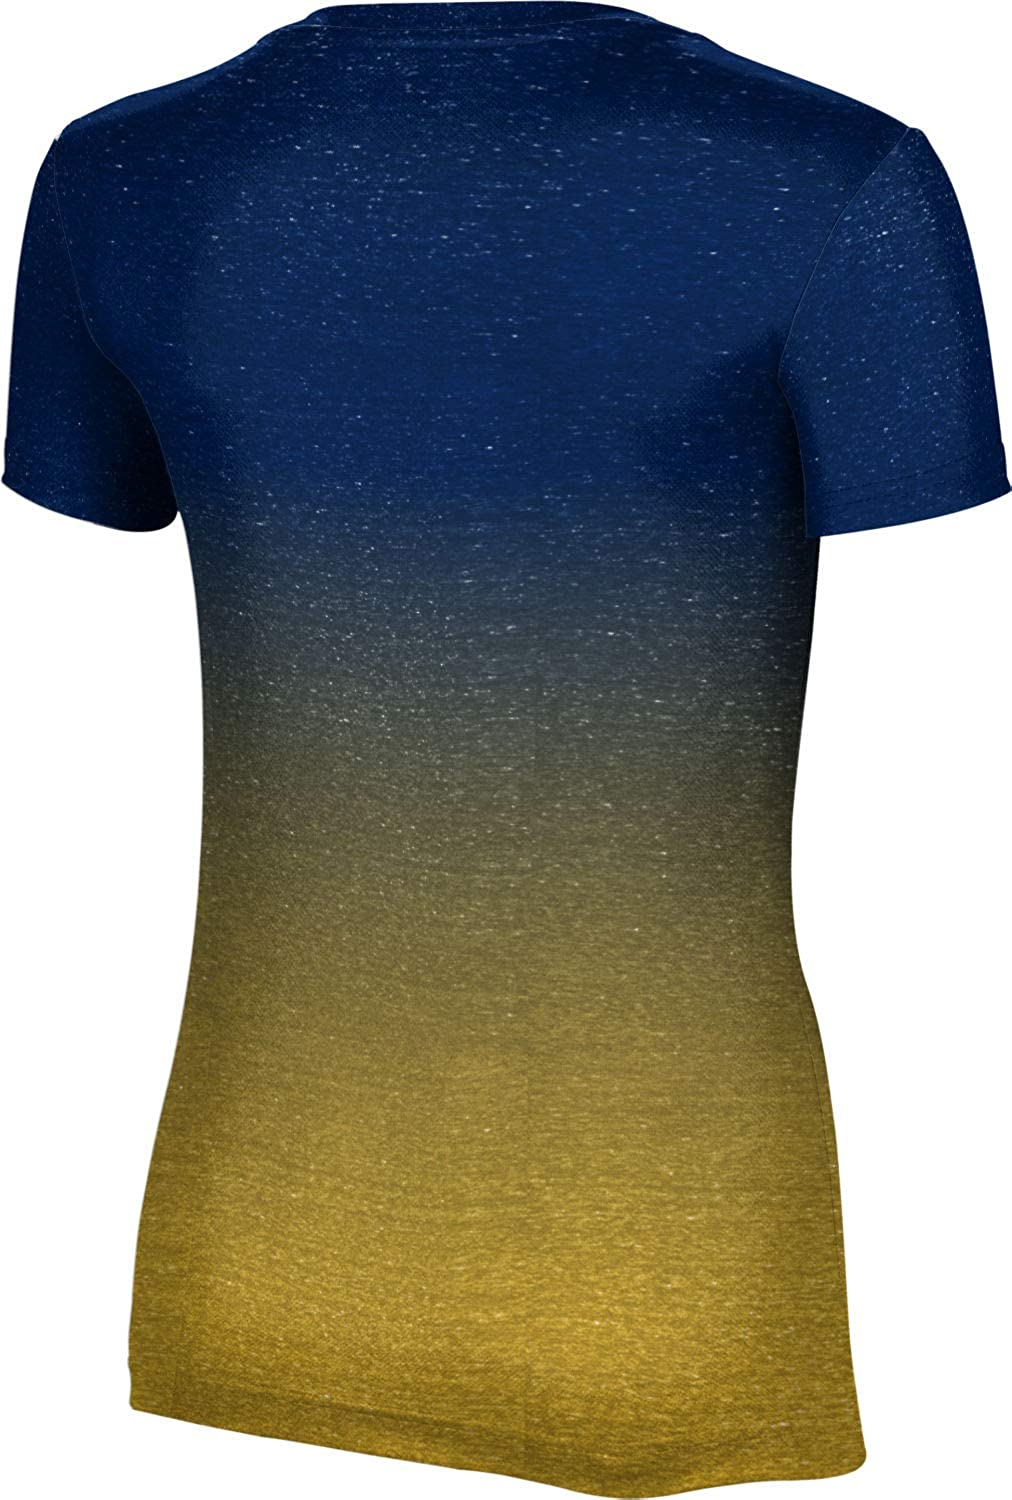 ProSphere Marquette University Girls' Performance T-Shirt (Ombre)